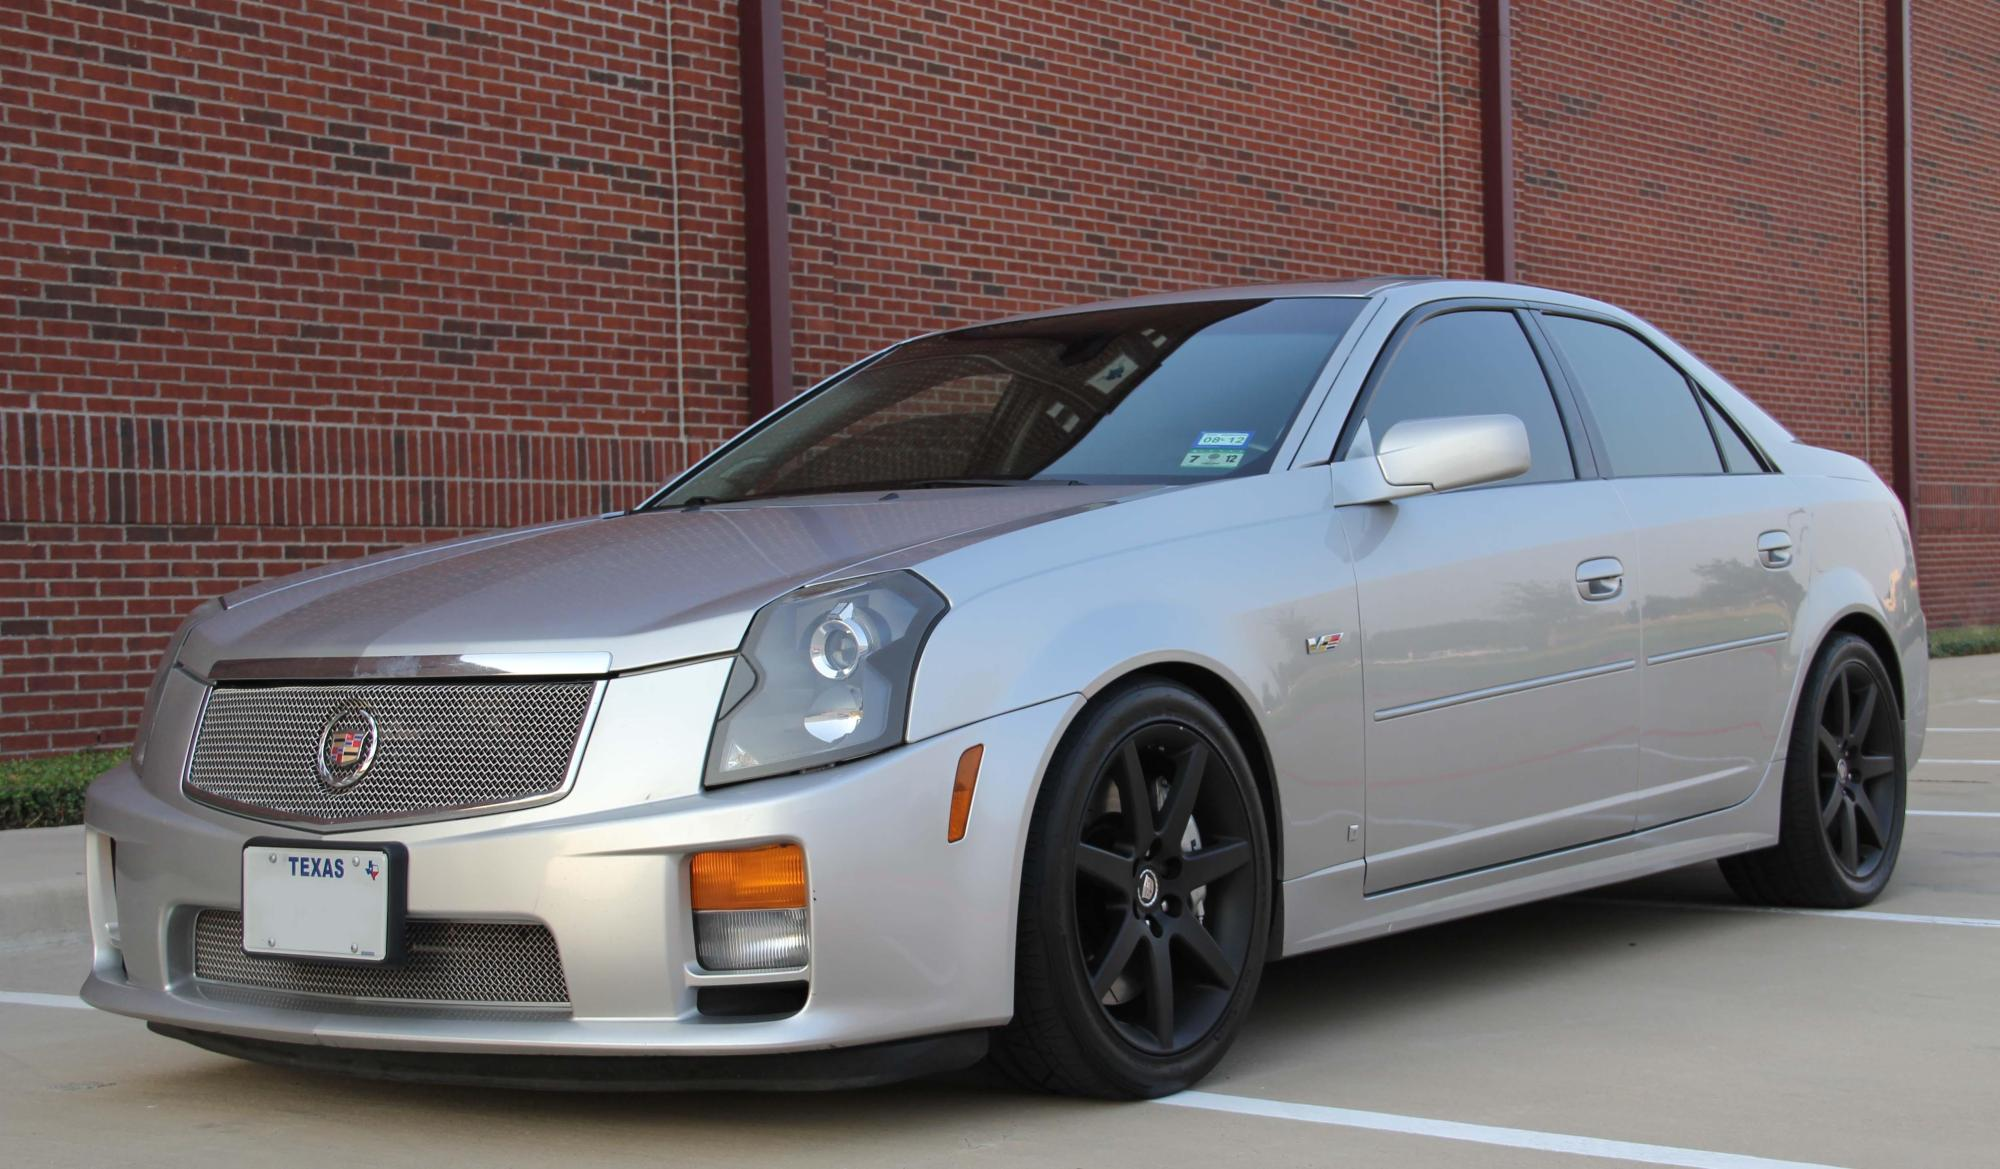 hight resolution of koster88 2007 cadillac cts